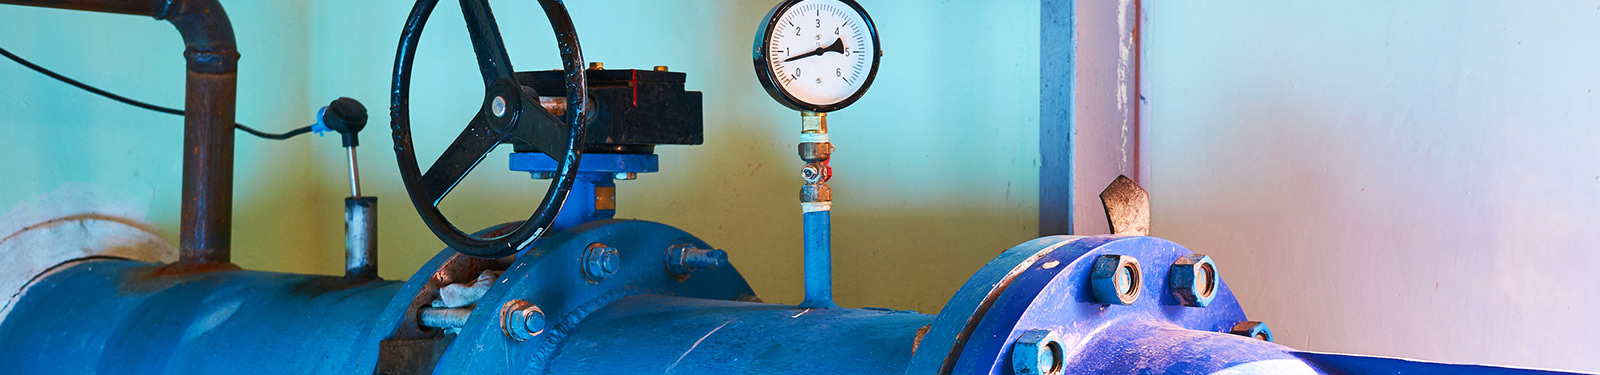 Corrosive Environment Flow Measurement